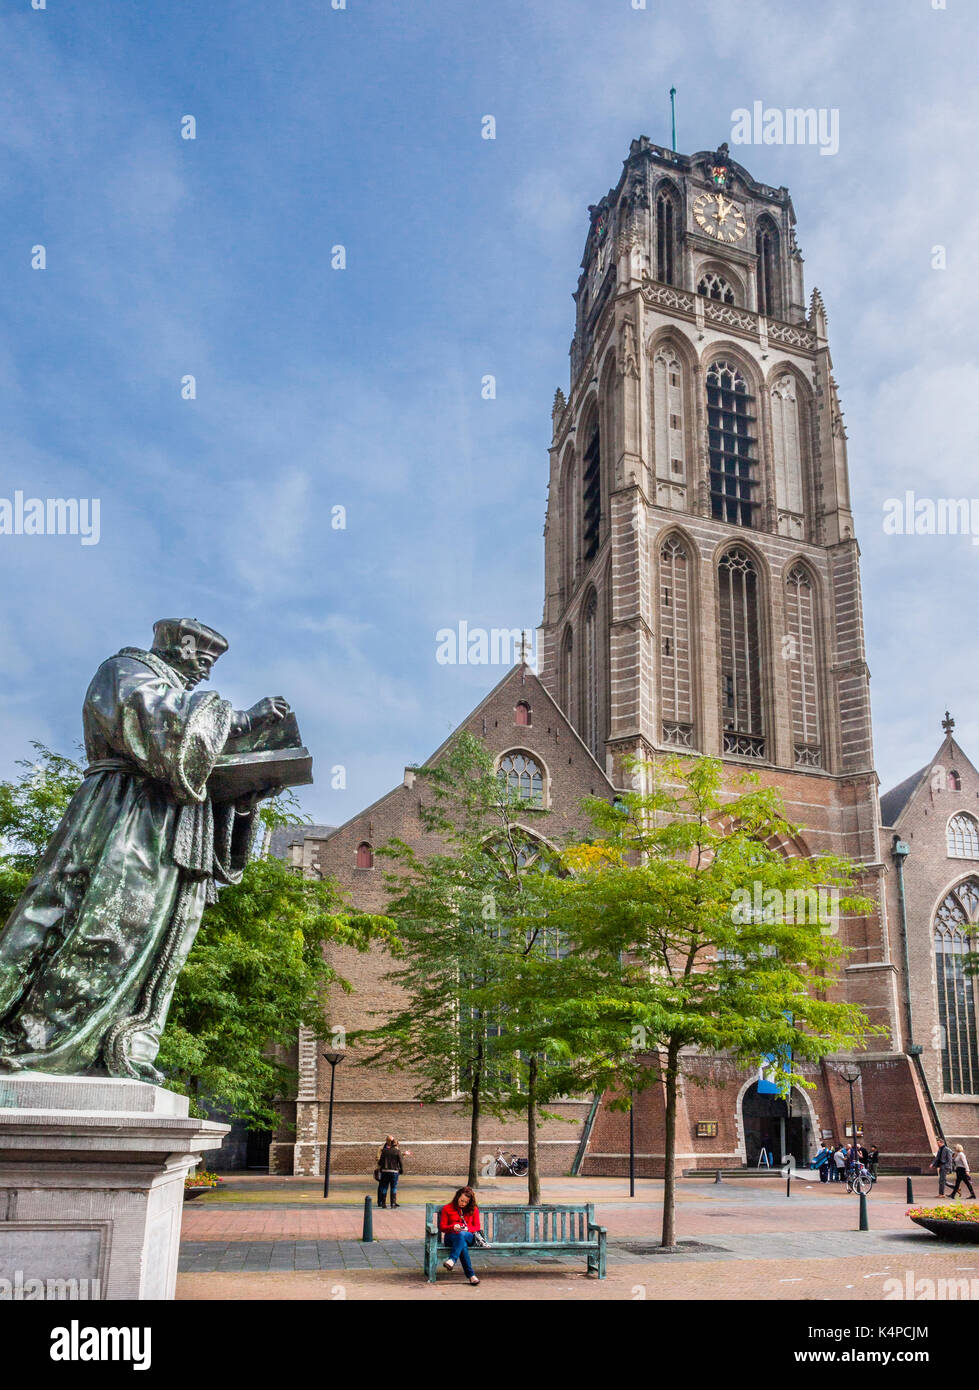 Netherlands, South Holland, Rotterdam, Grote of Sint-Laurenskerk, St. Lawrence Church Stock Photo